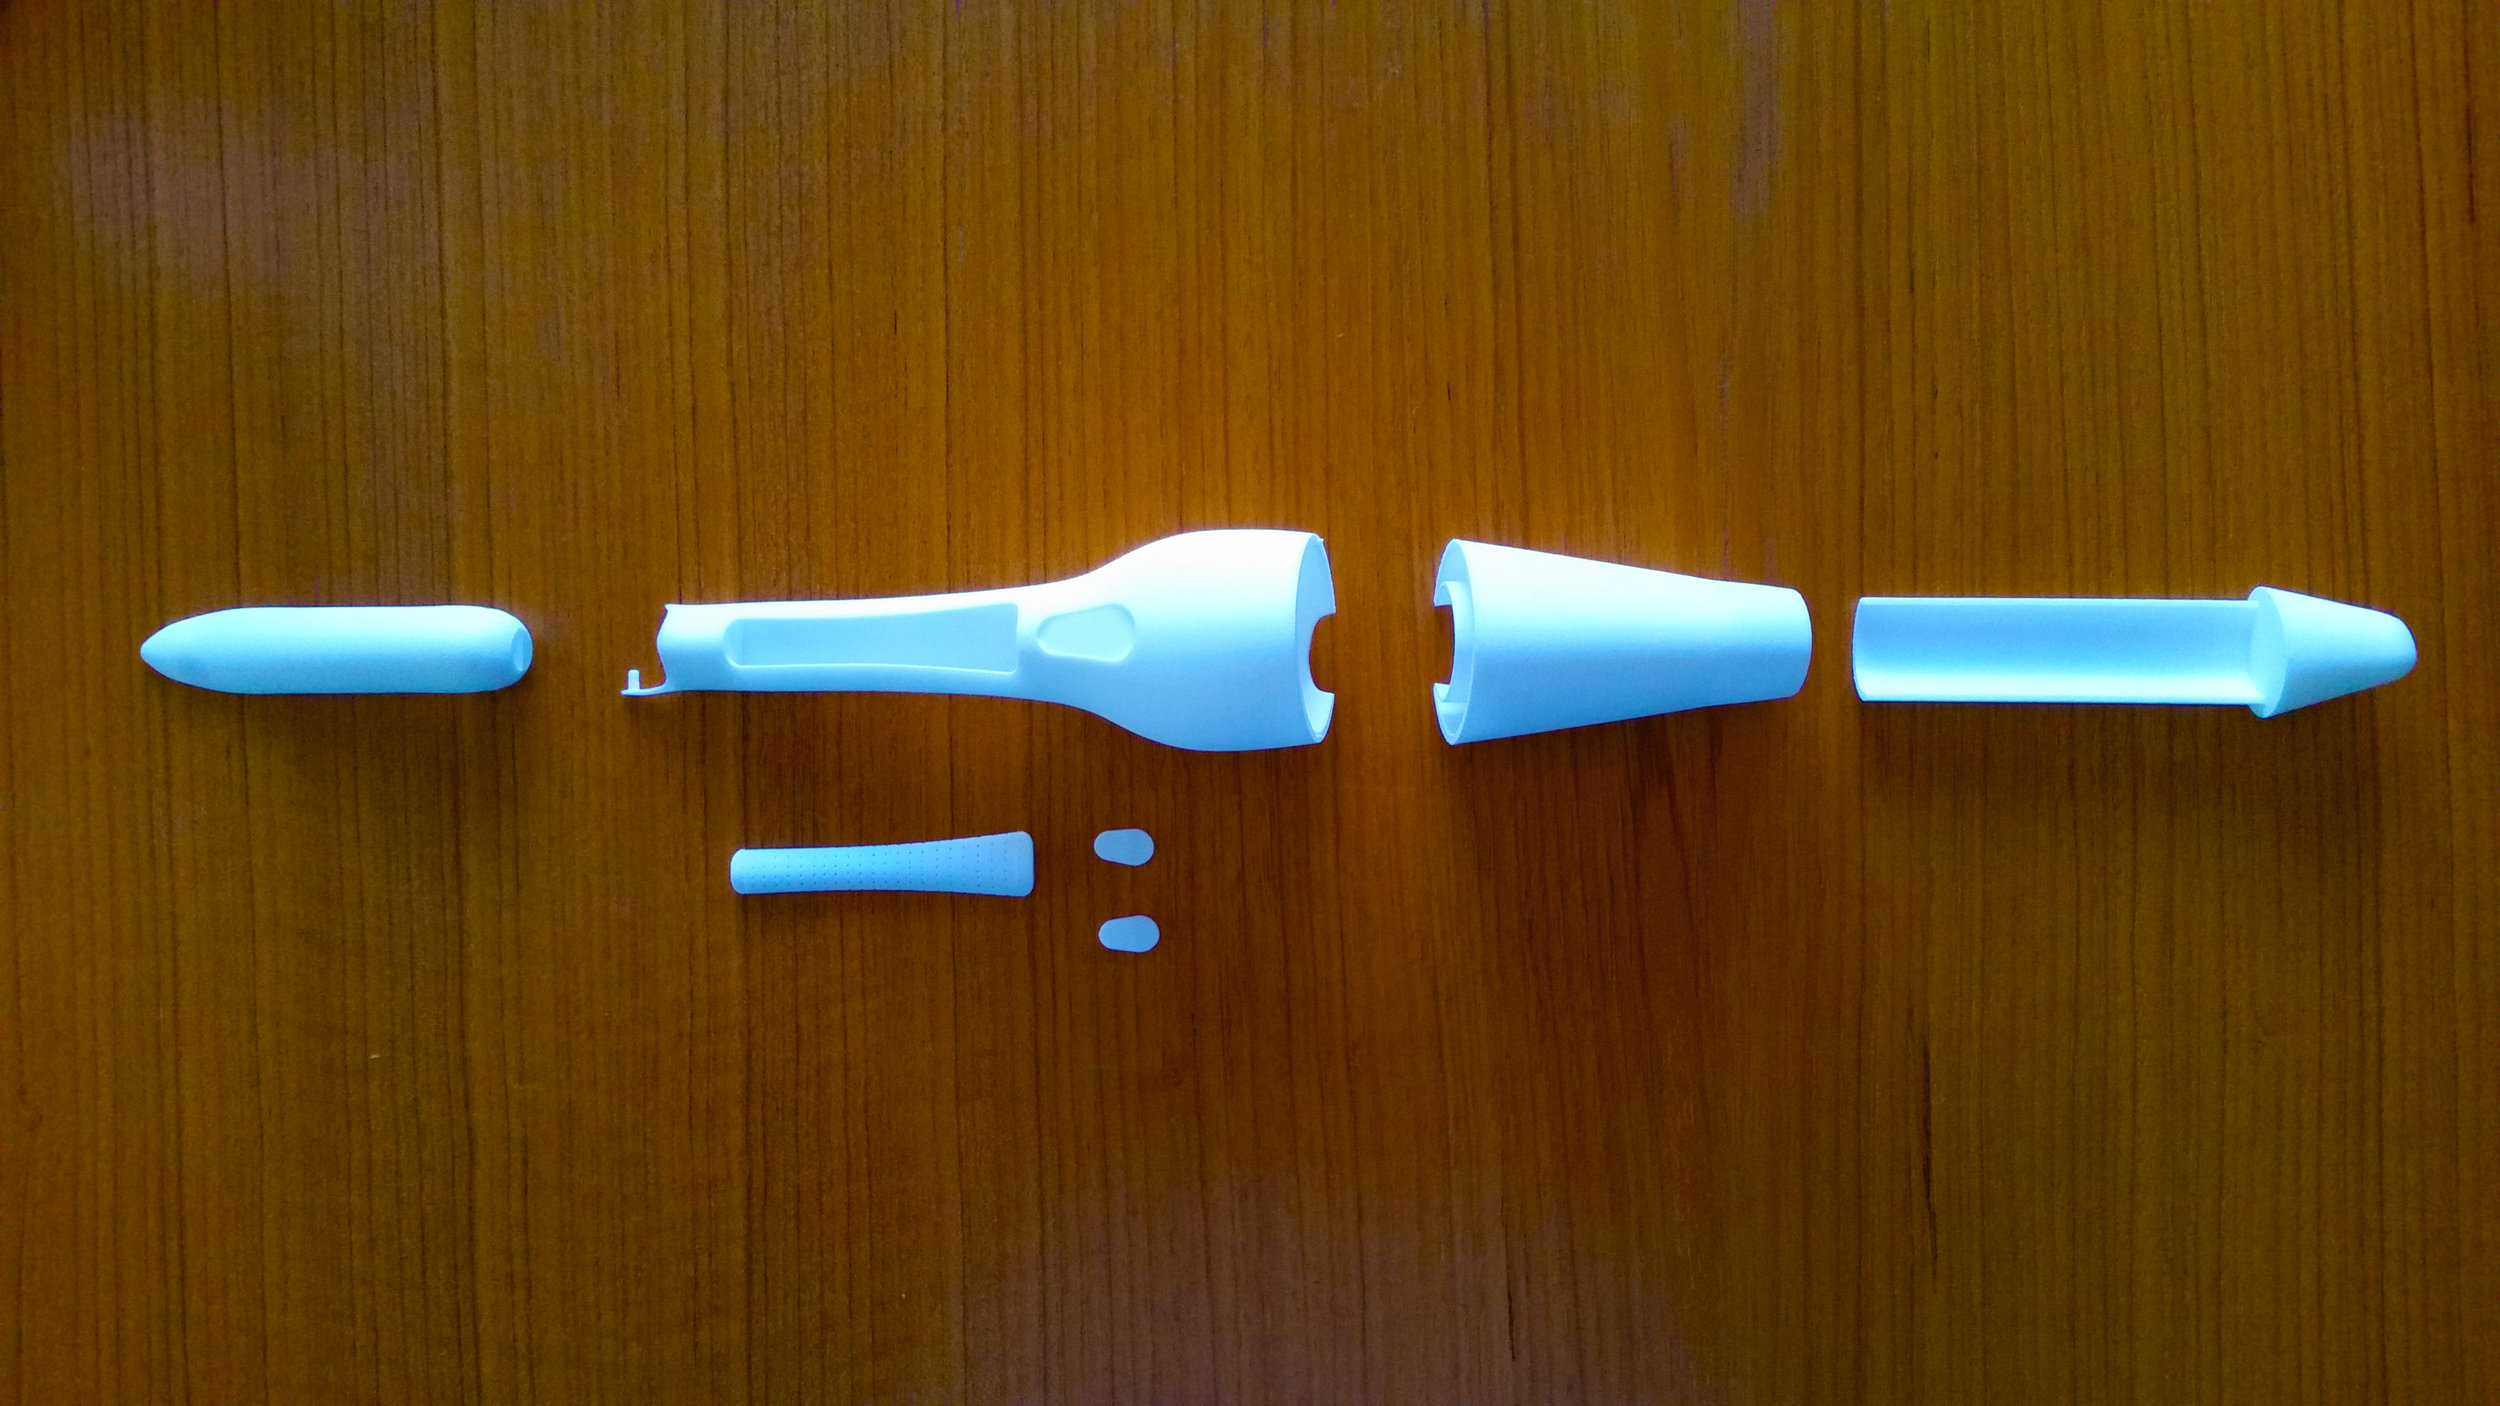 After modeling in Solidworks, parts were 3-D printed using Shapeways white, strong, and flexible material (Nylon).